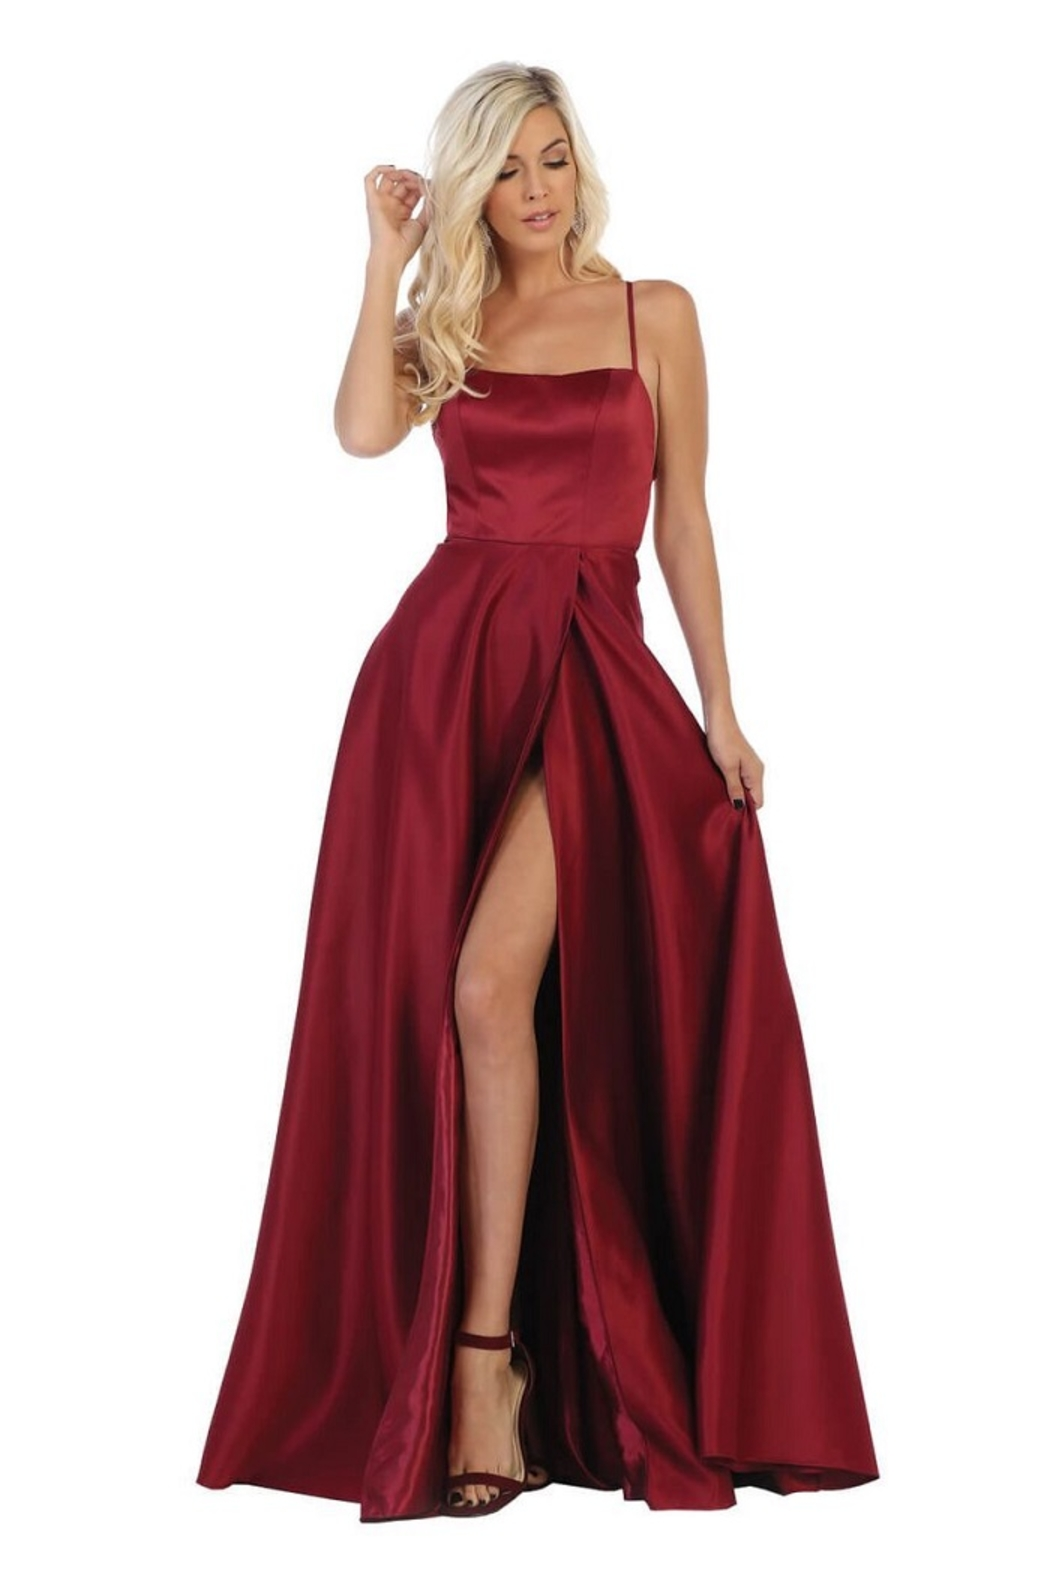 May Queen  Burgundy Satin A-Line Formal Long Dress - Main Image